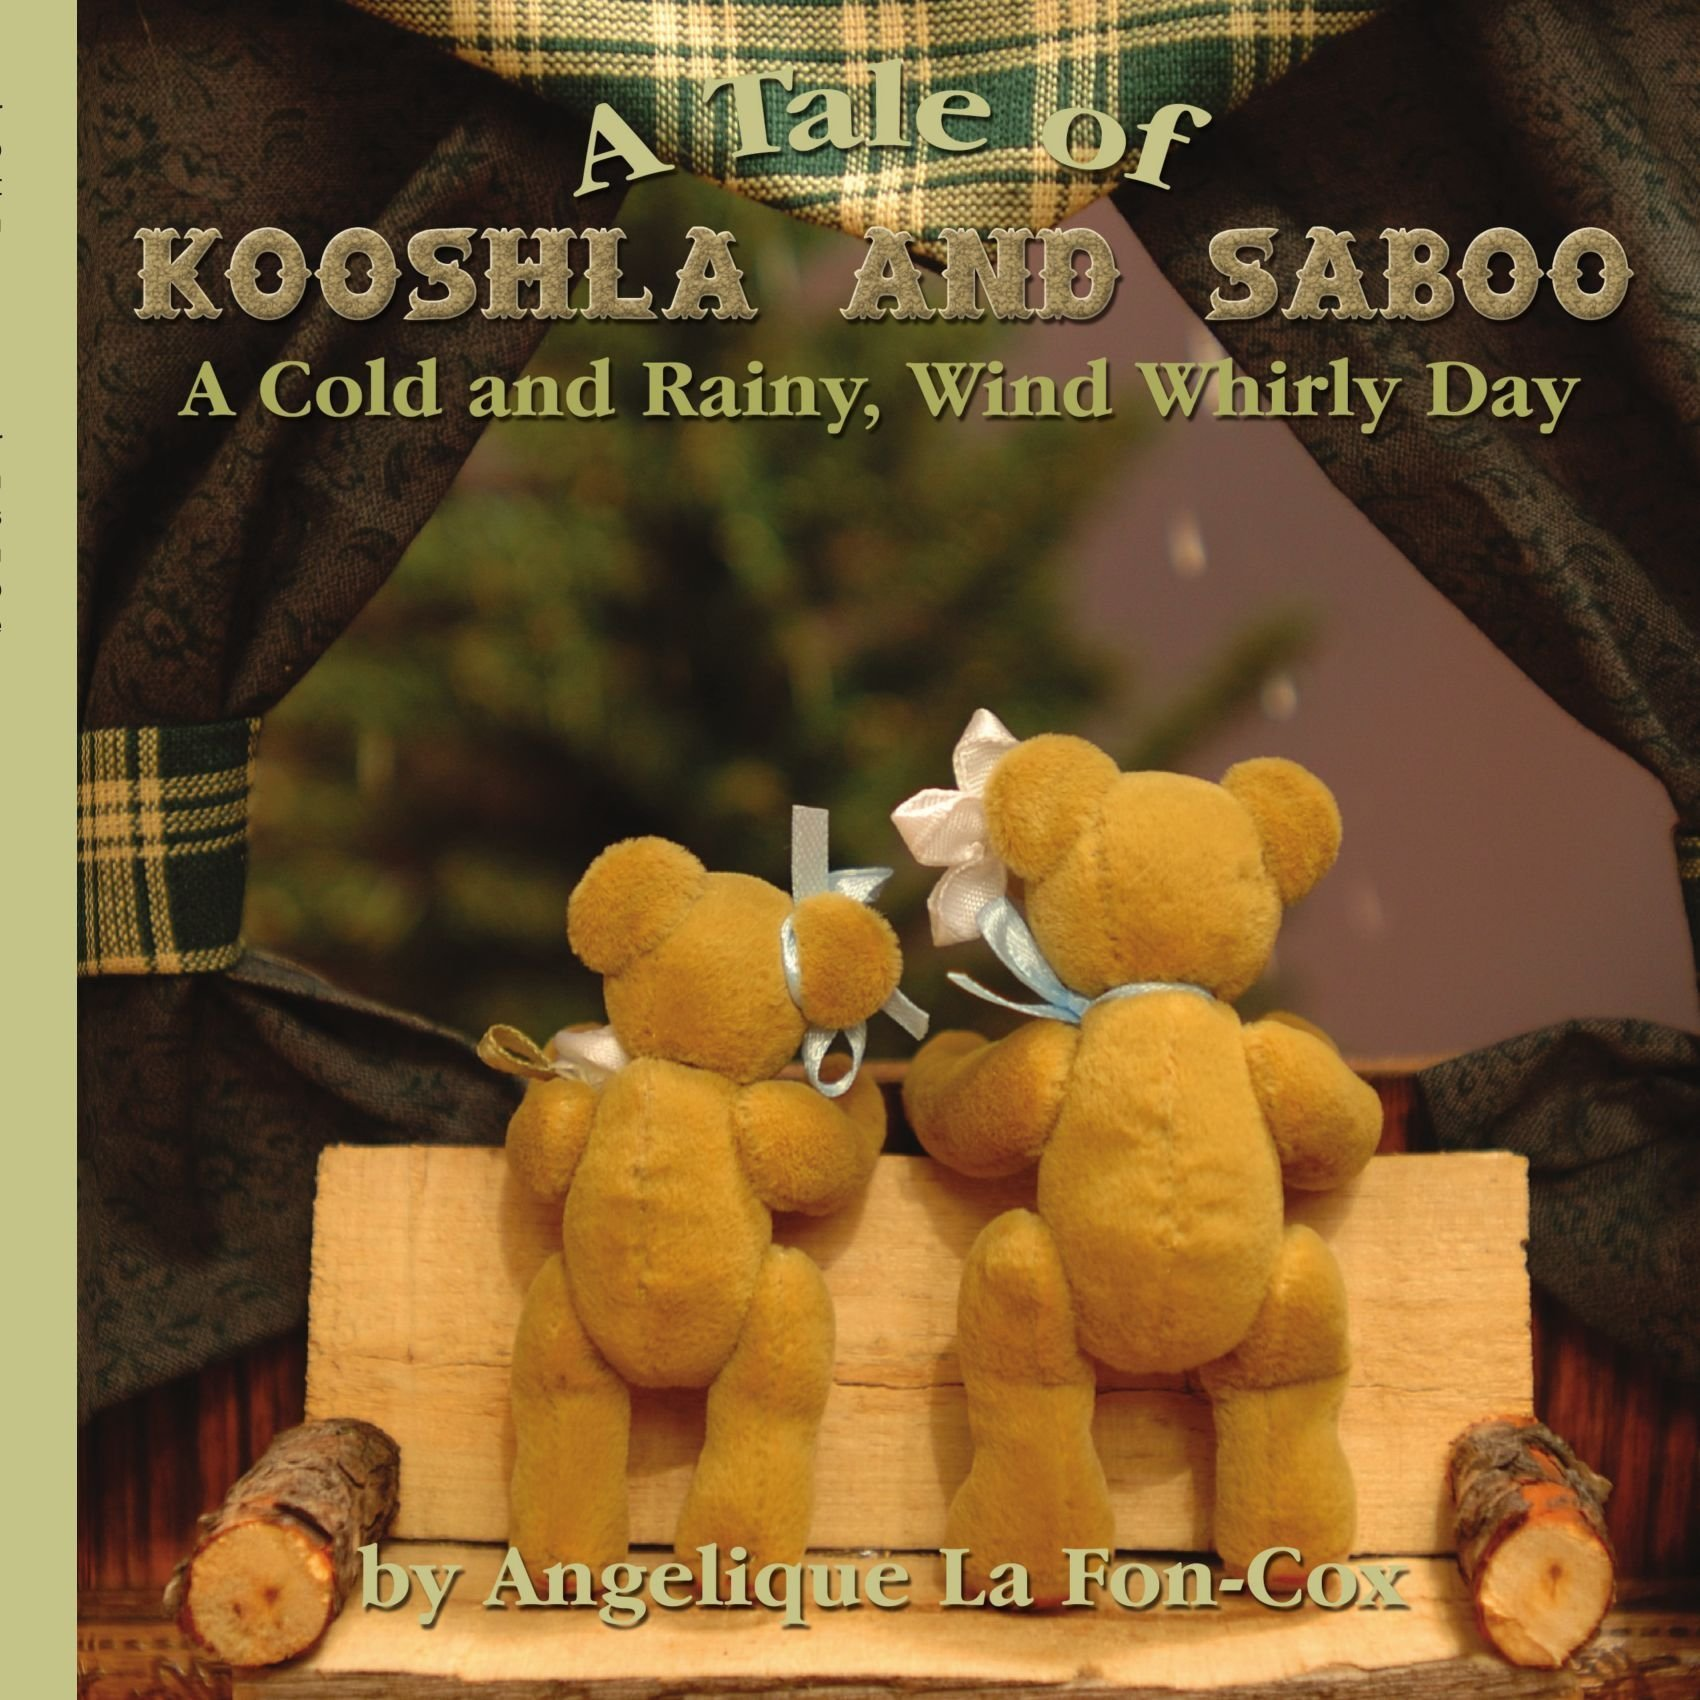 Download A Tale of Kooshla and Saboo: A Cold and Rainy, Wind Whirly Day ebook